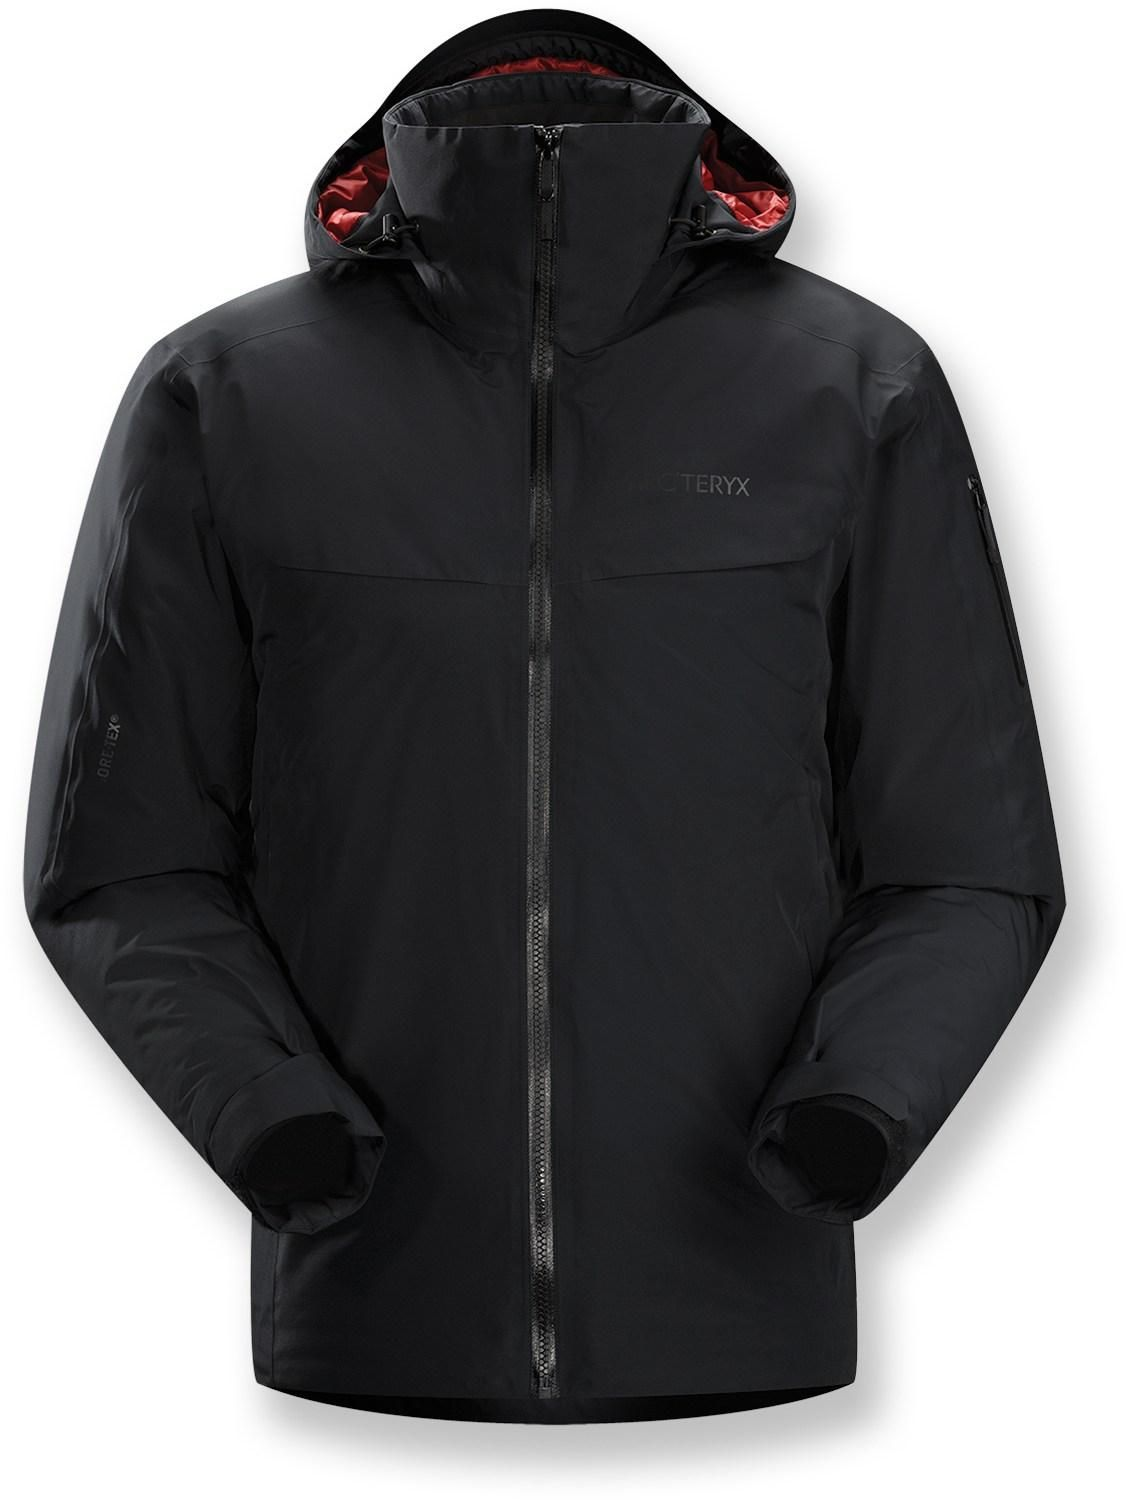 You Ll Never Suffer Through Another Bone Chilling Chairlift Ride With The Men S Arc Teryx Macai Insulated Jacket I Mens Jackets Mens Insulated Jackets Jackets